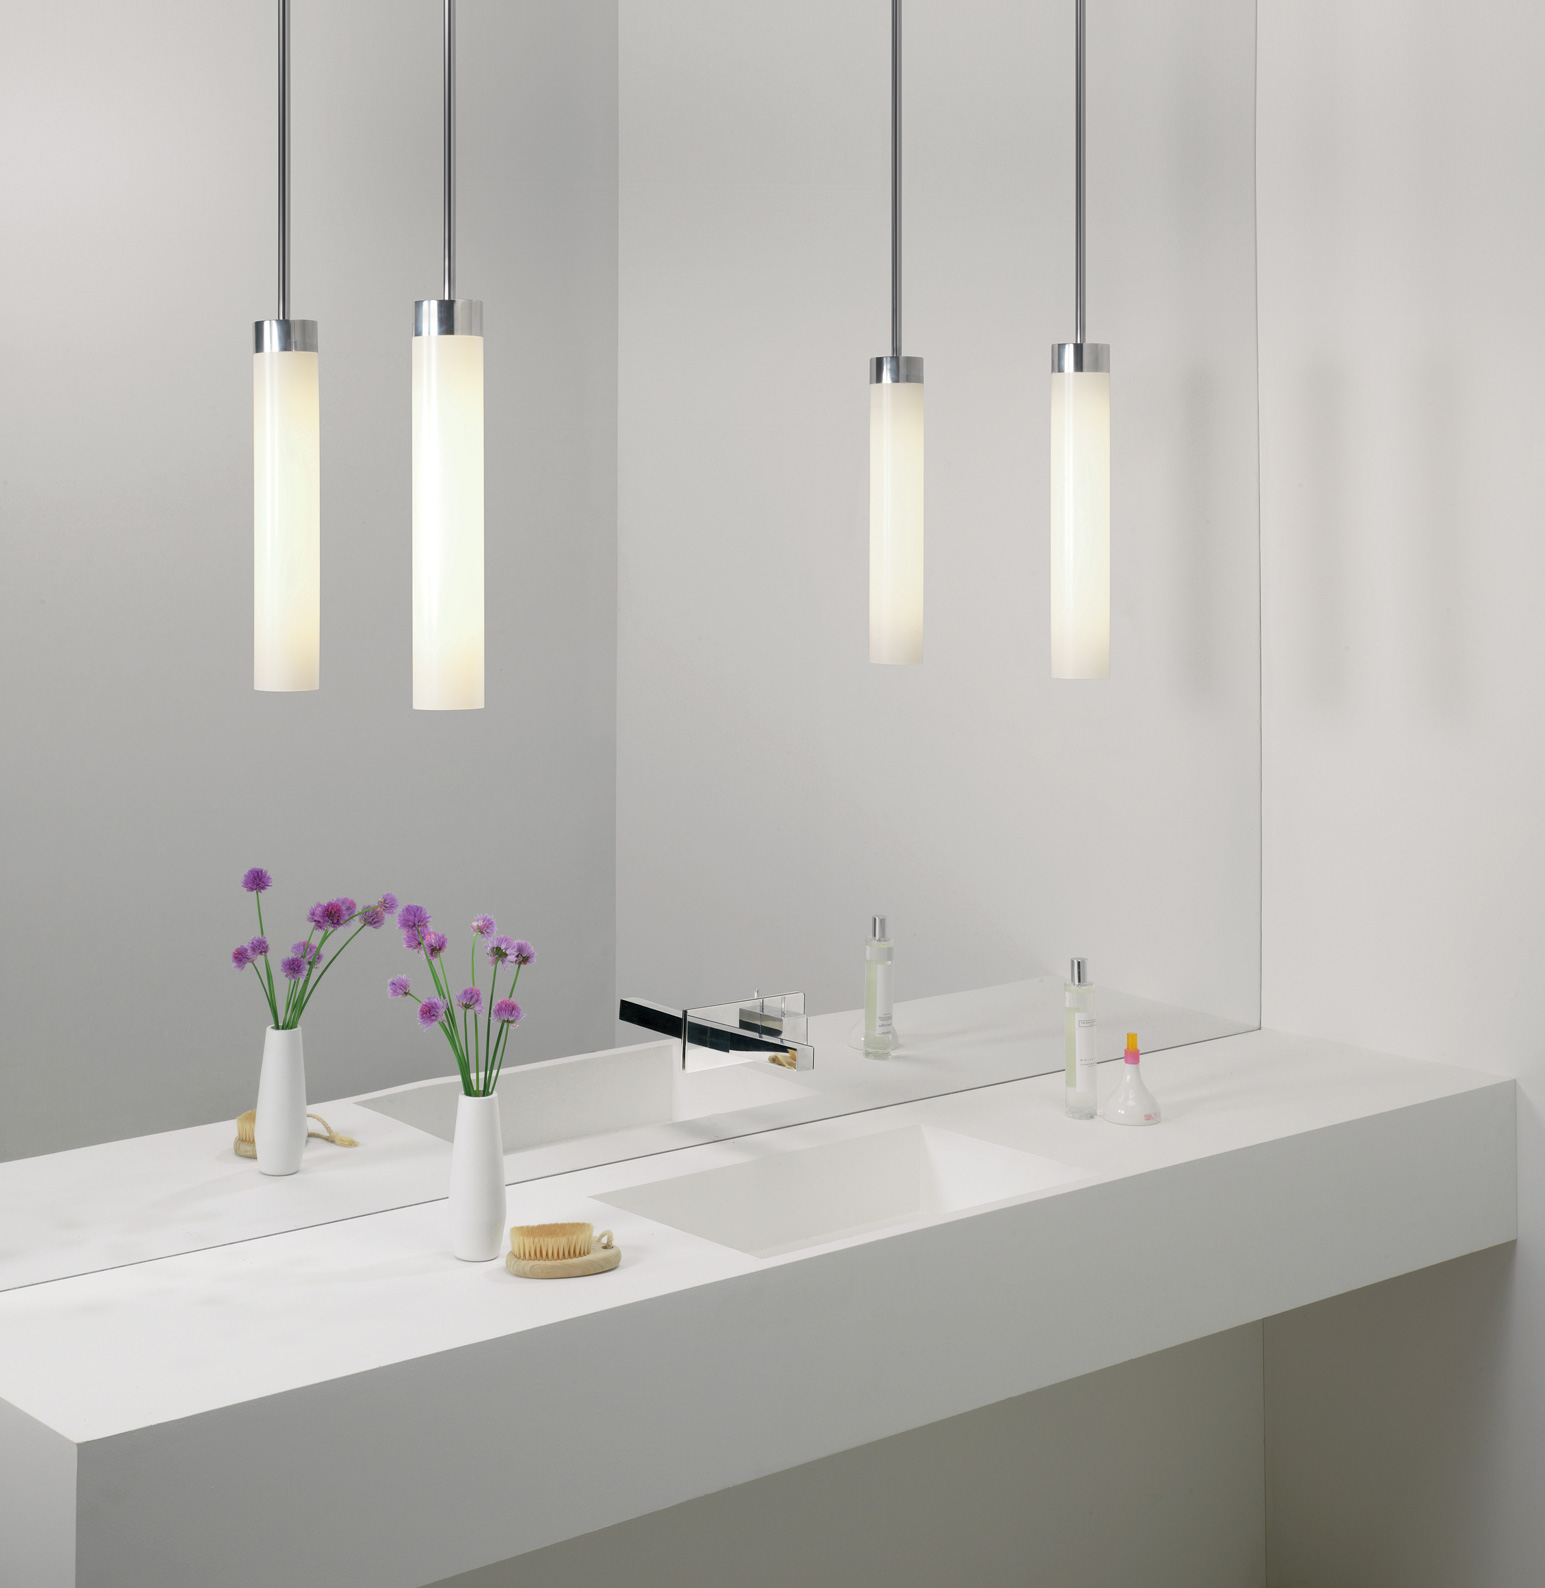 lighting for a kitchen astro kyoto pendant 7031 bathroom pendant 24w 2g11 lamp 7031